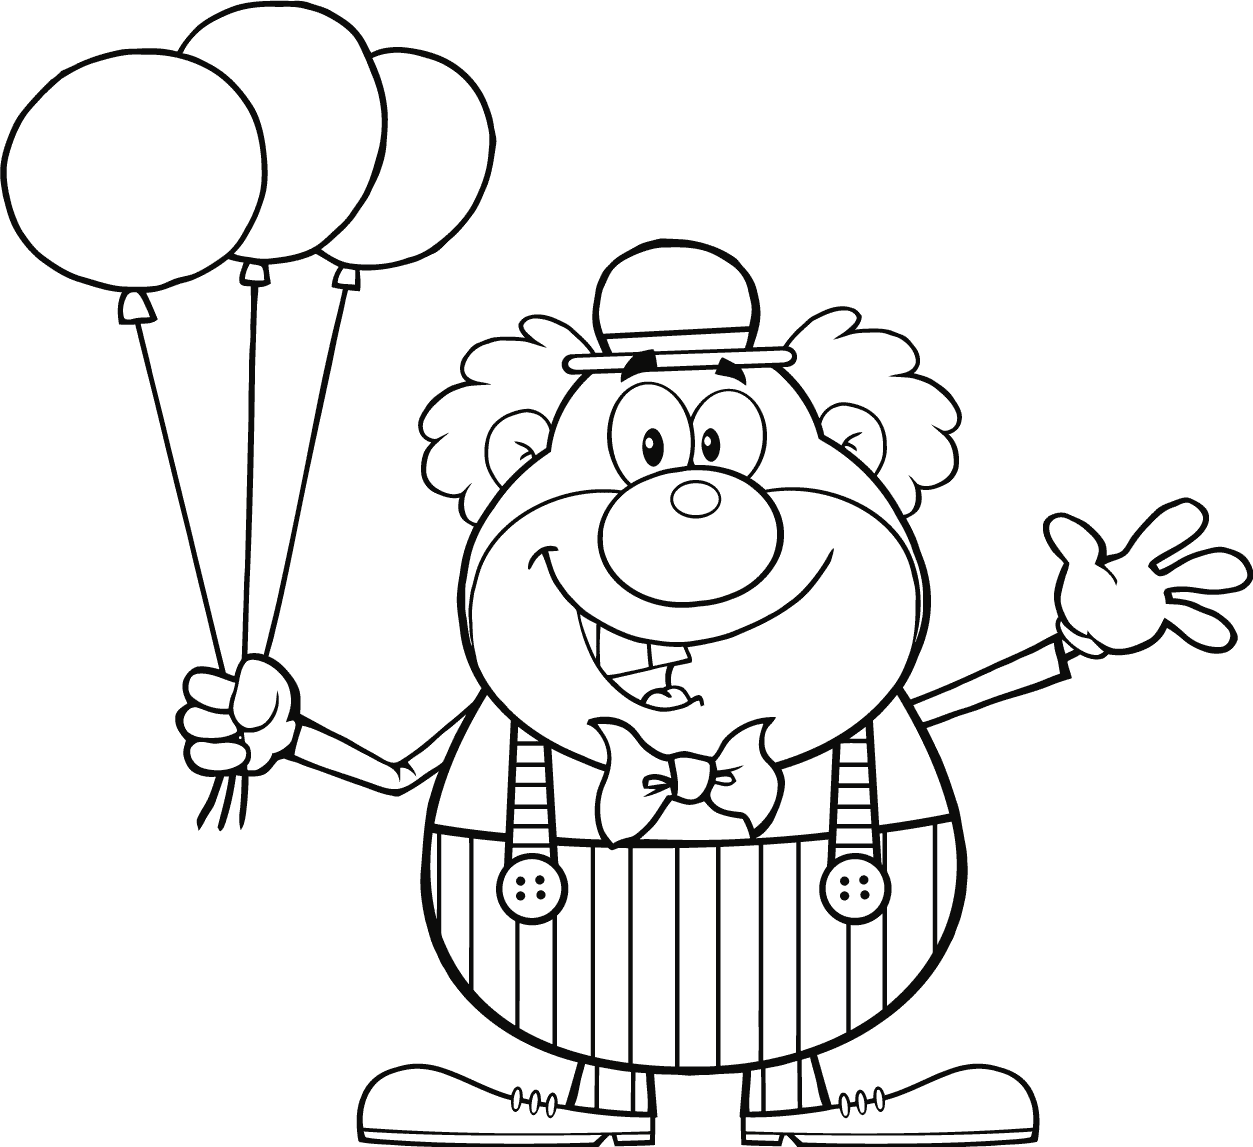 coloring balloon free preschool coloring pages hot air balloon from balloon balloon coloring